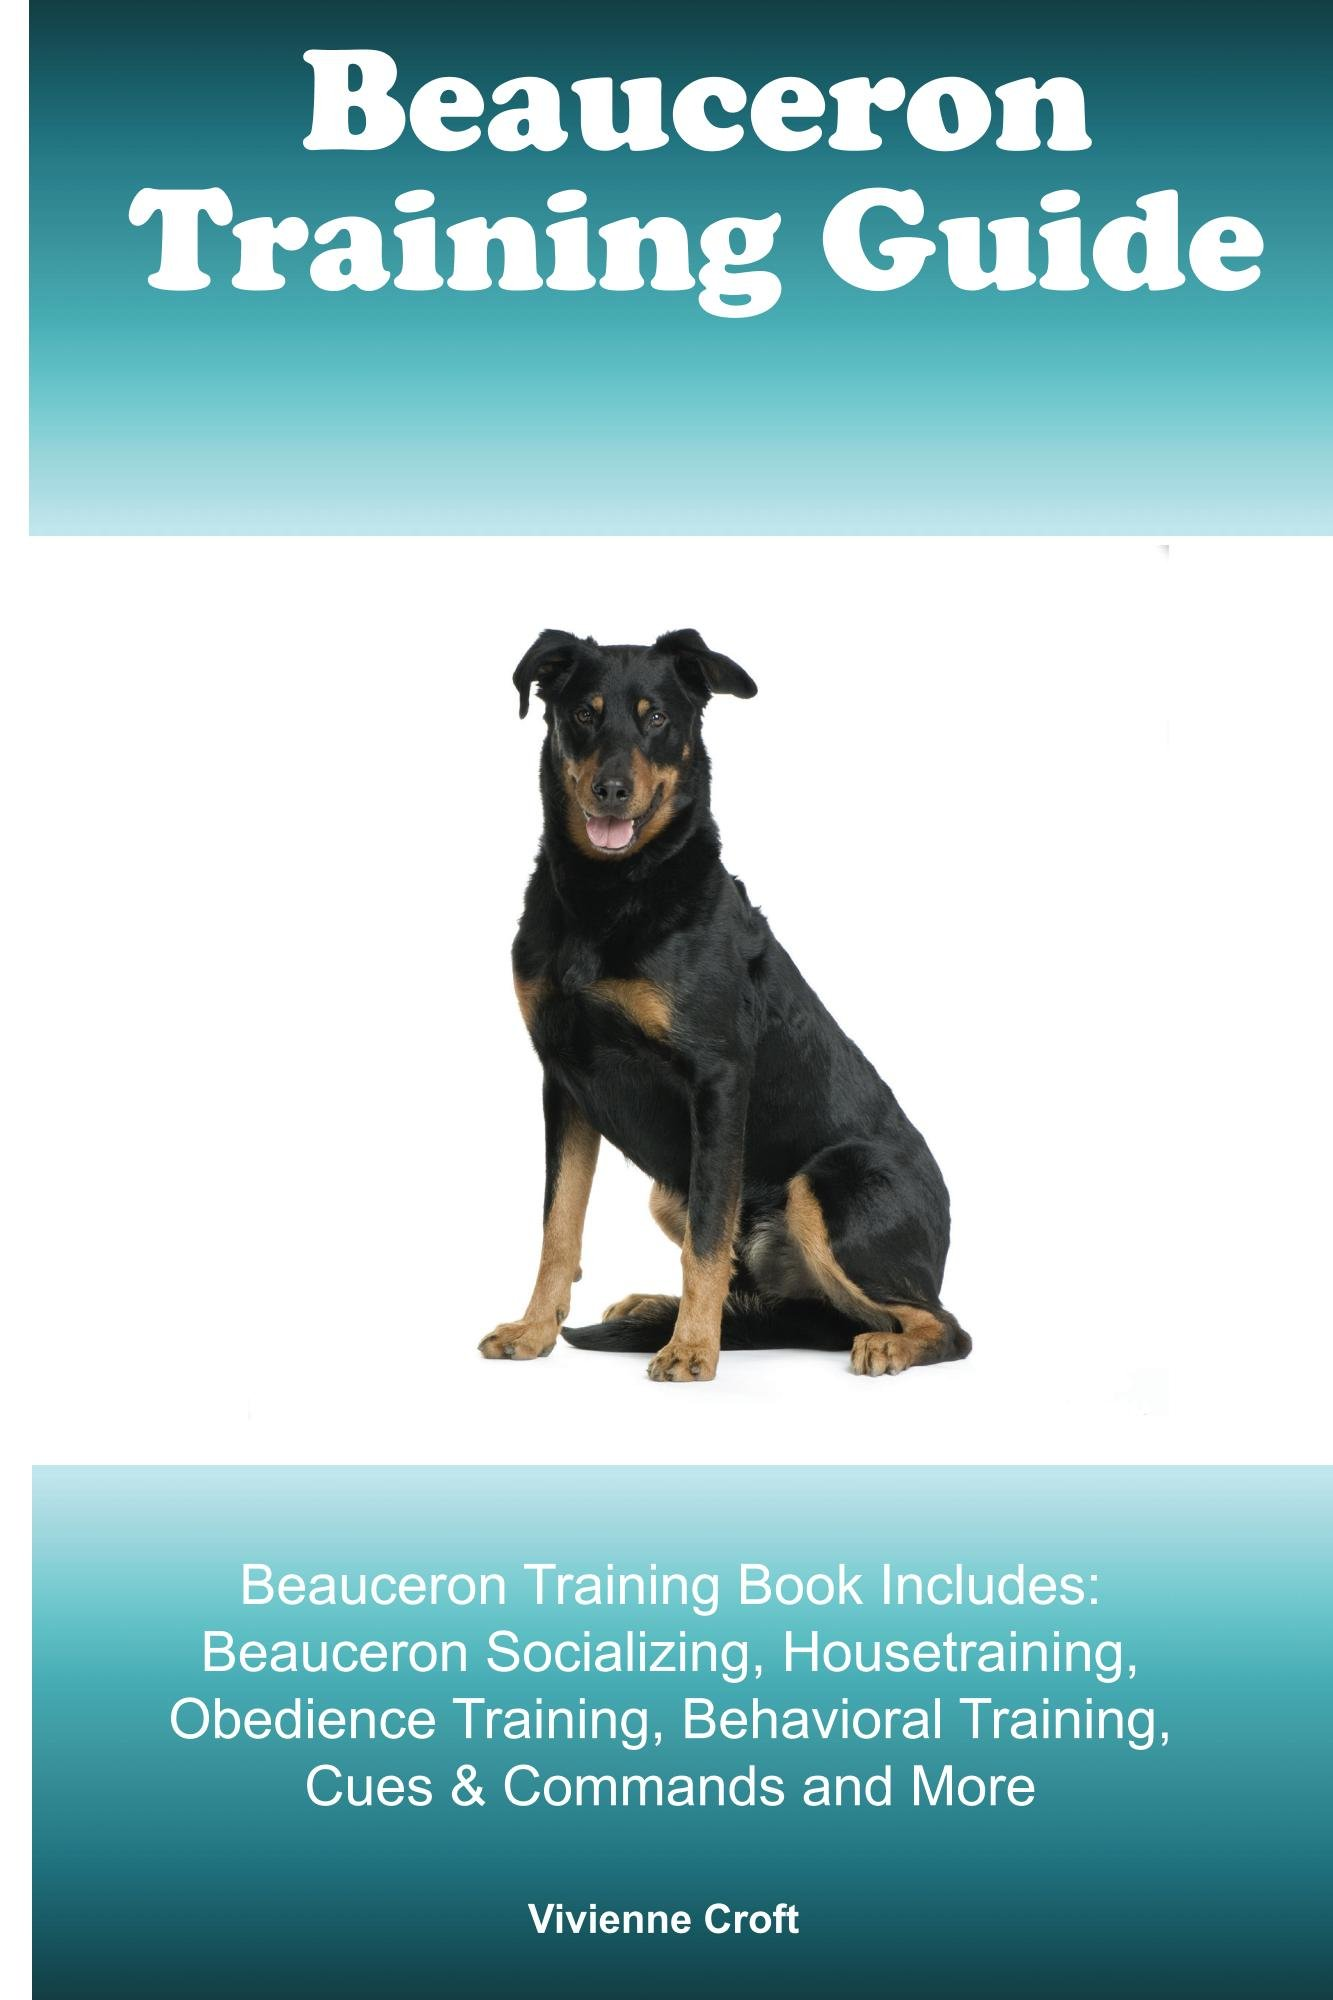 Beauceron Training Guide Beauceron Training Book Includes: Beauceron Socializing, Housetraining, Obedience Training, Behavioral Training, Cues & Commands and More